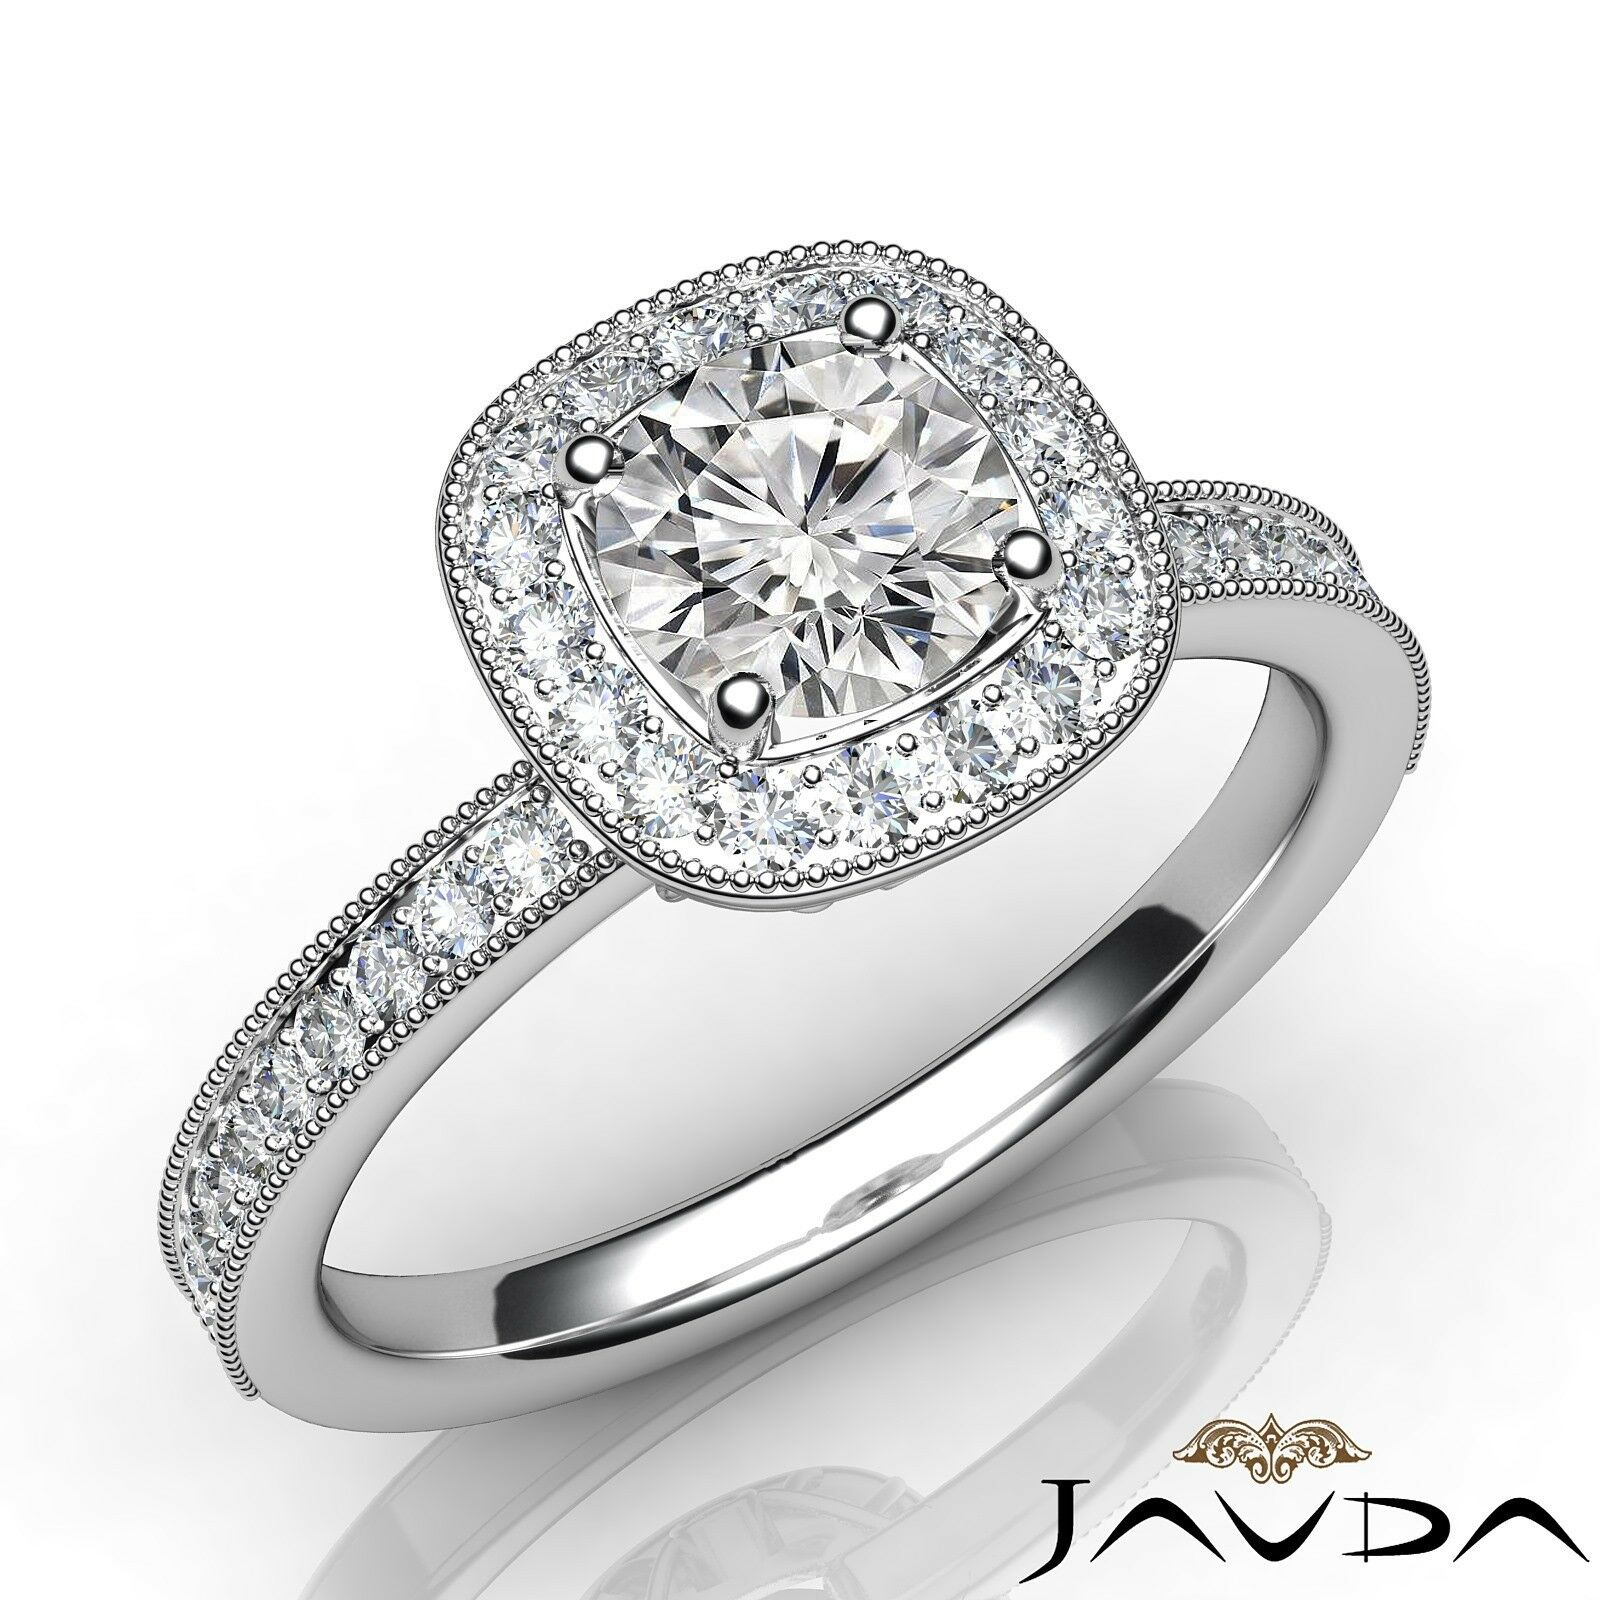 1ctw Miligraine Her Round Diamond Engagement Ring GIA E-VS2 White Gold Women New